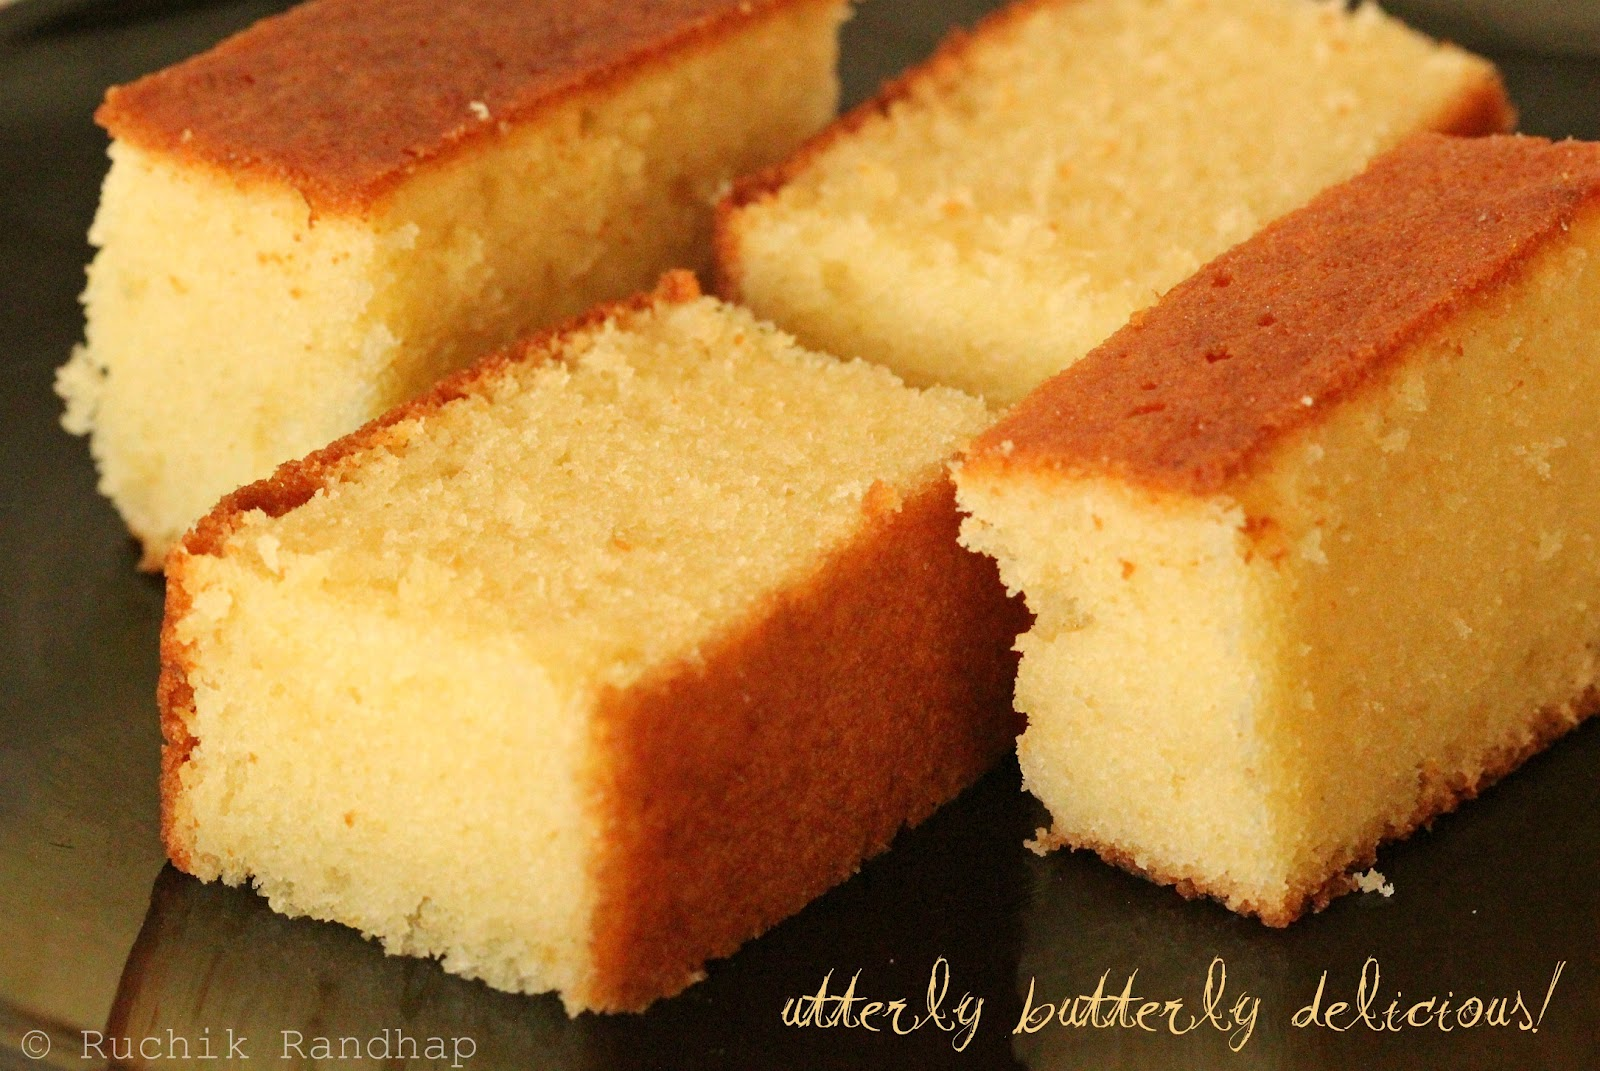 Butter Pound Cake With Heavy Cream